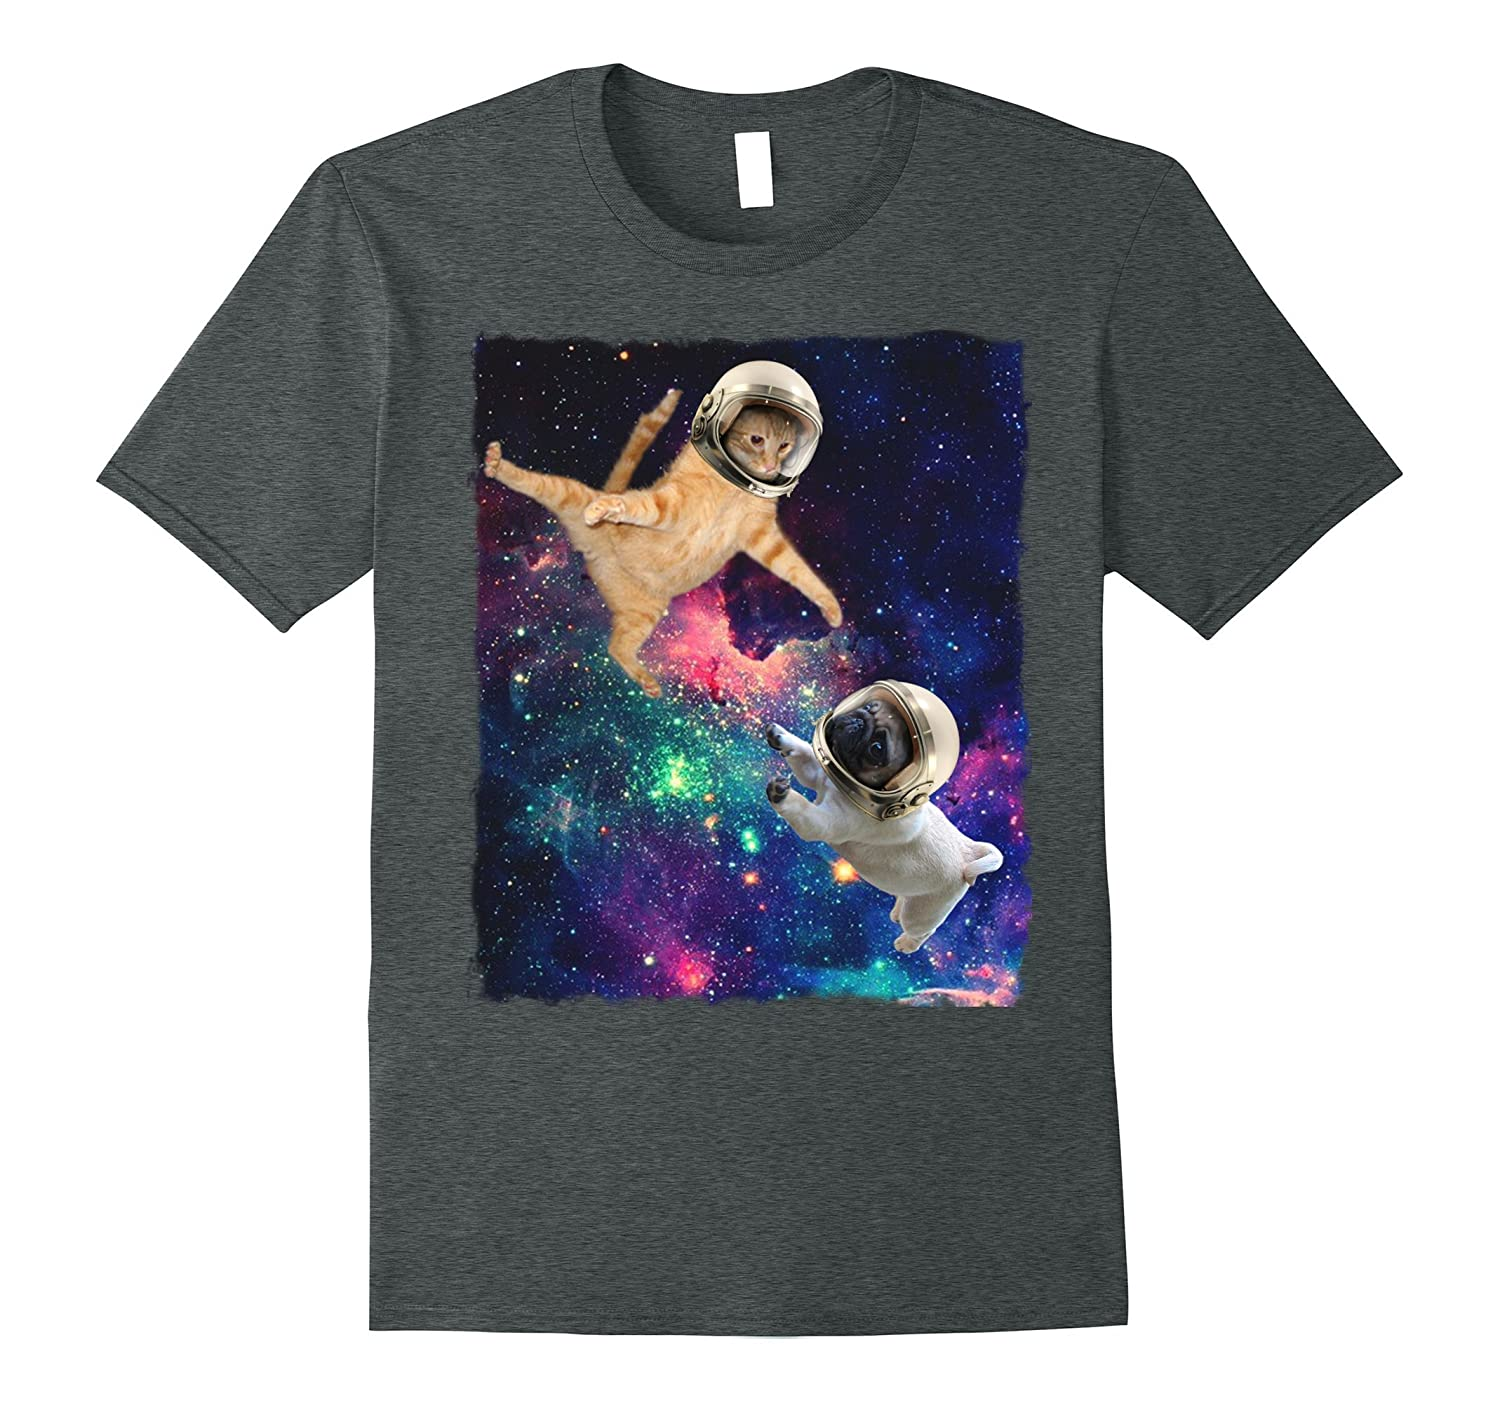 Cute Space Cat vs Pug Shirt Galaxy Epic Fight In Outer Space-T-Shirt